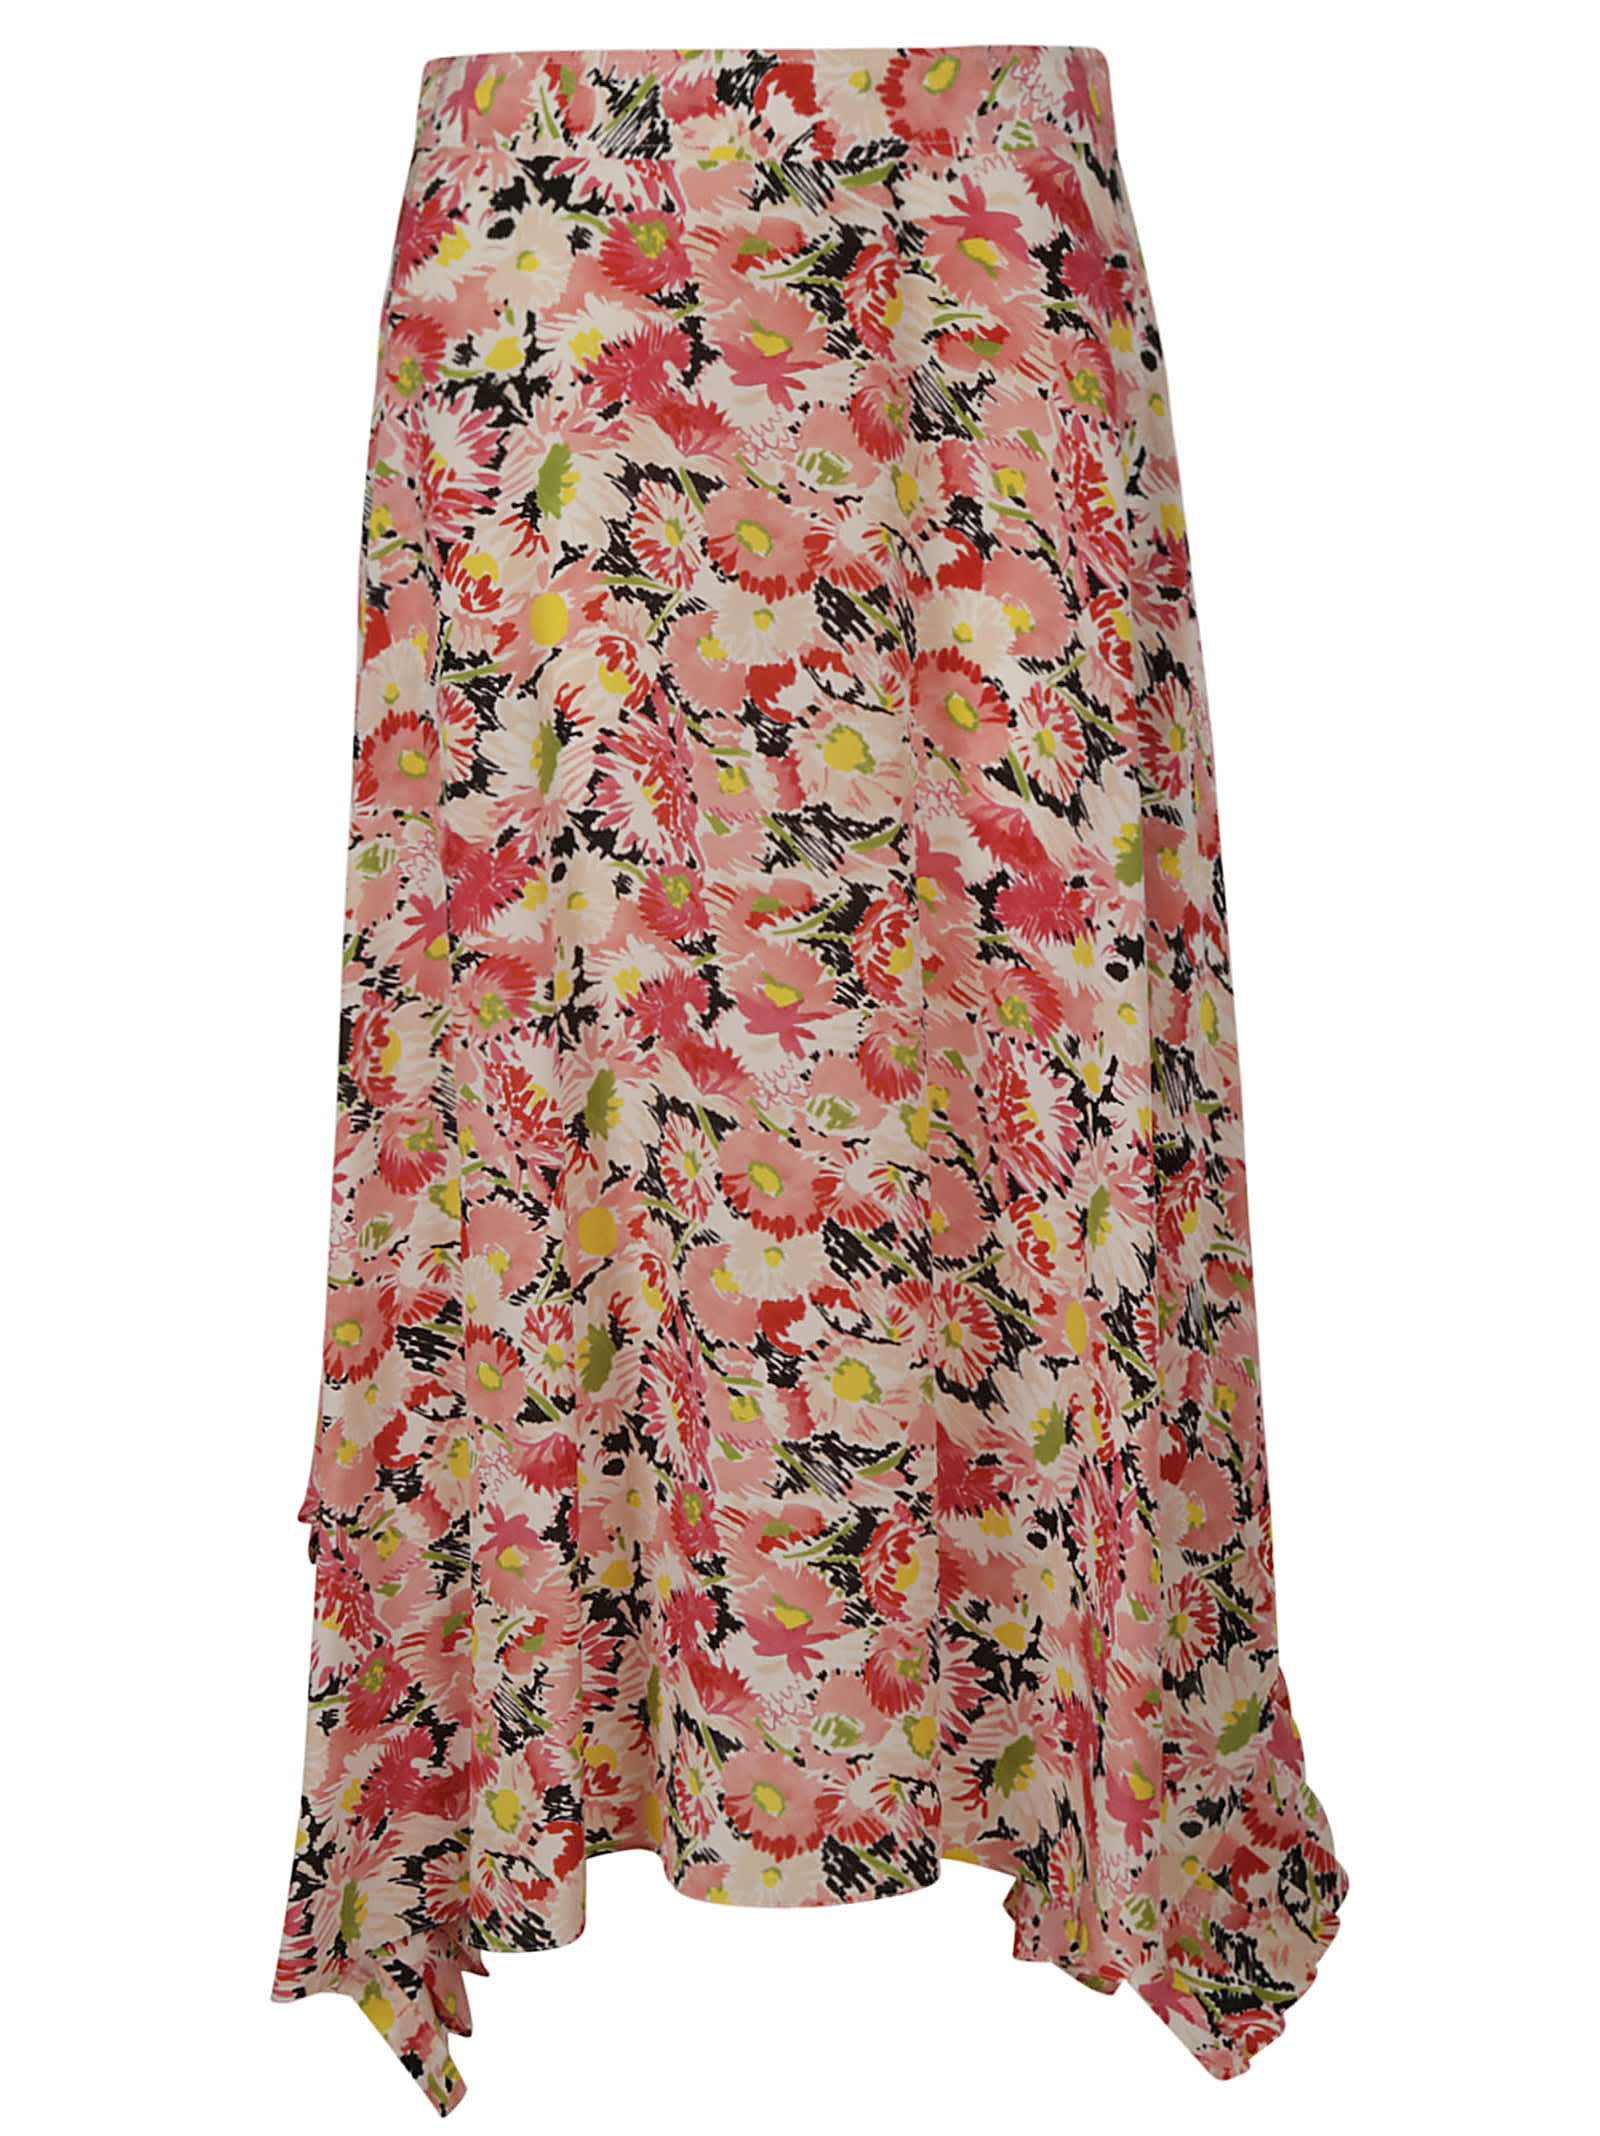 Stella Mccartney FLORAL PRINTED SKIRT